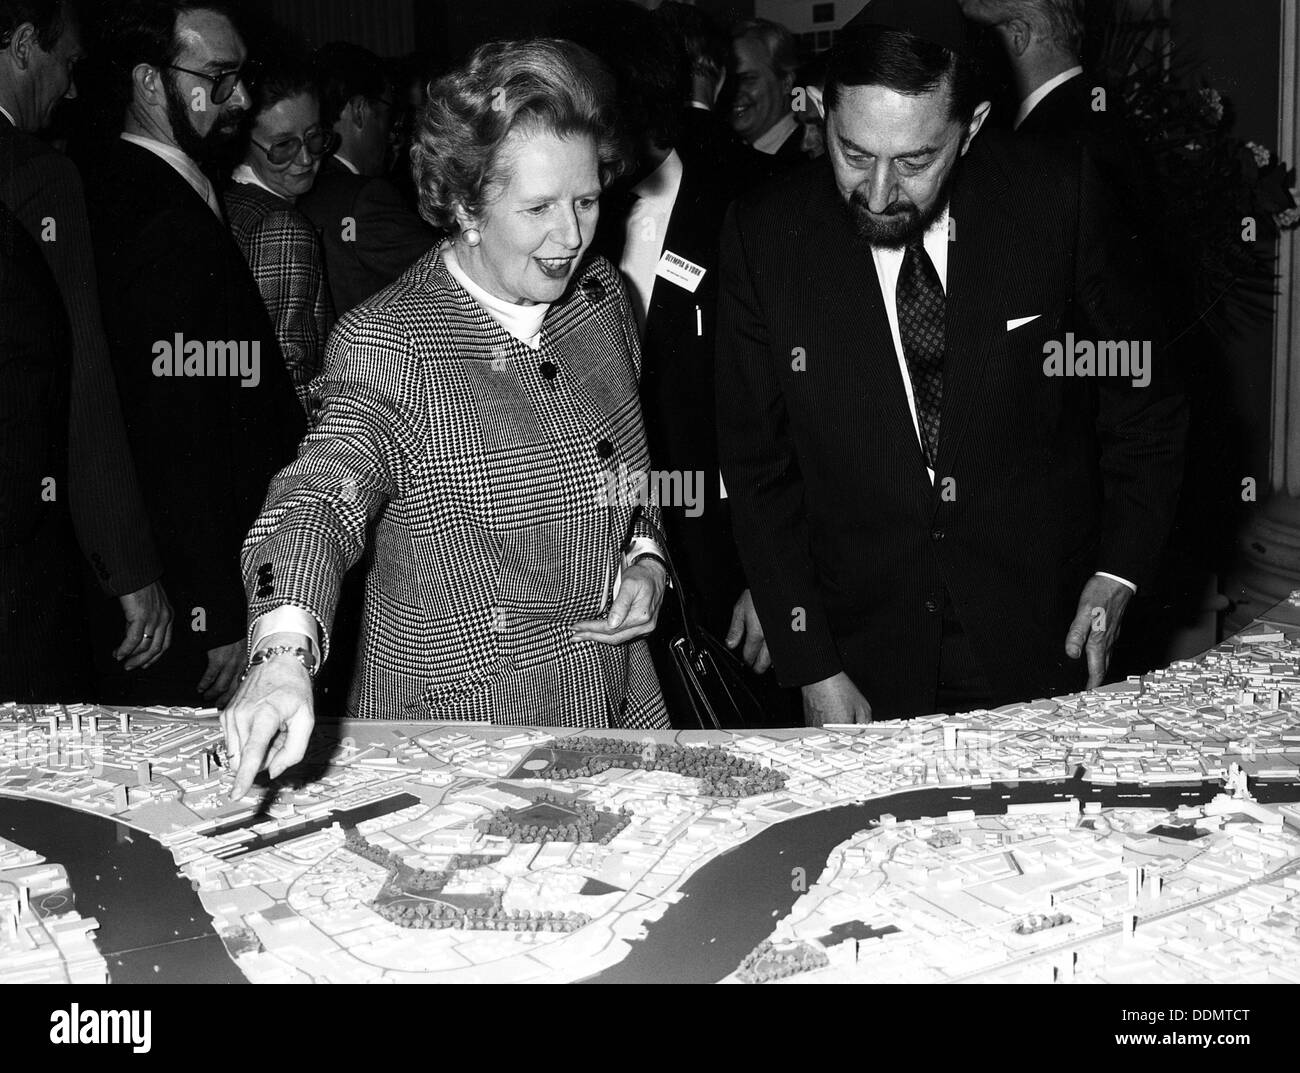 Margaret Thatcher (1925- ), British Prime Minister, viewing the Canary Wharf scheme, 1988. - Stock Image